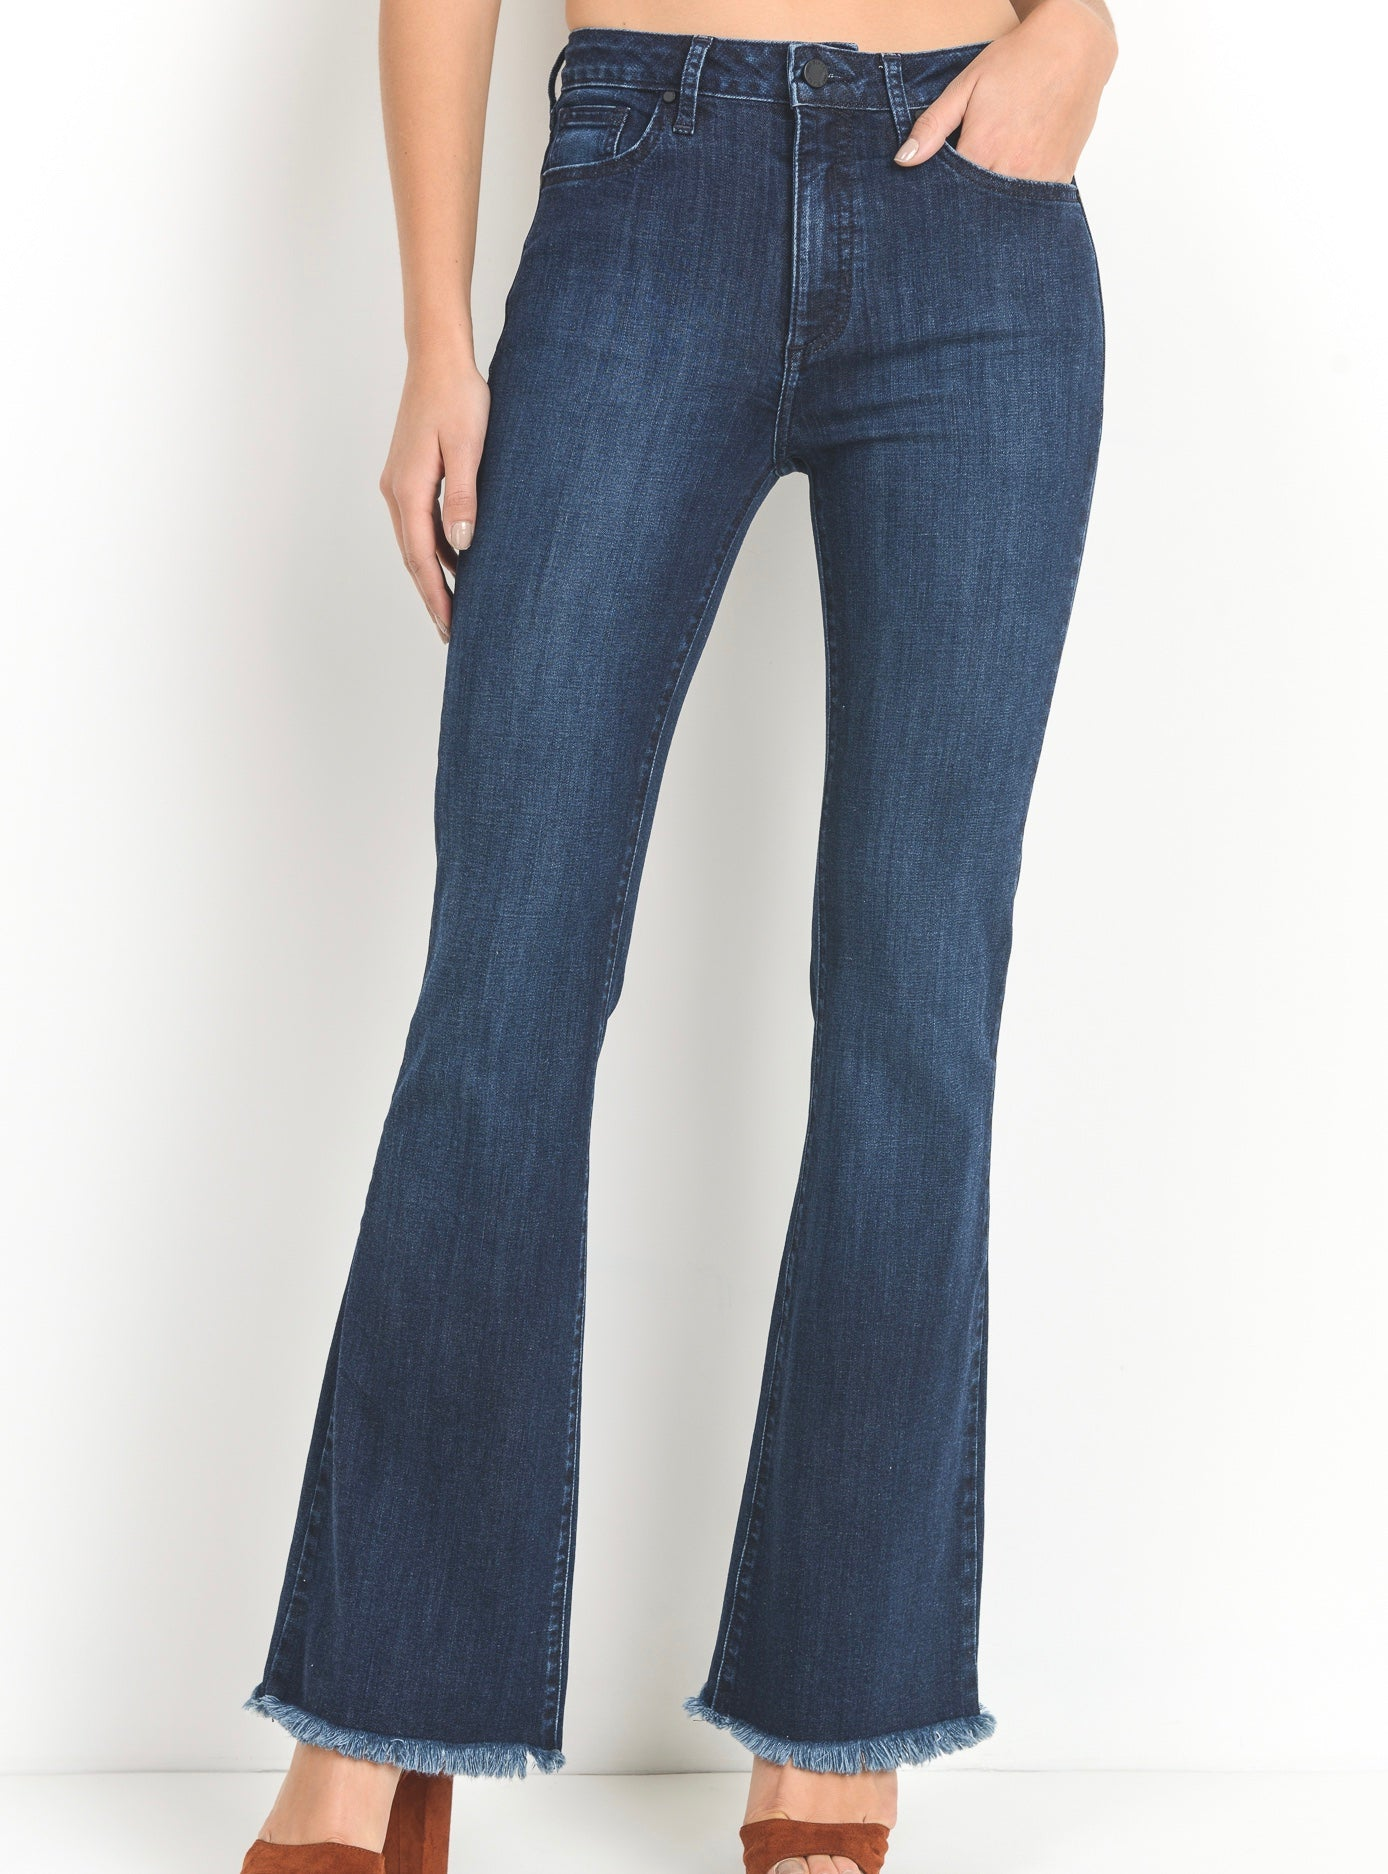 The Woodstock Fringe Flare Jean